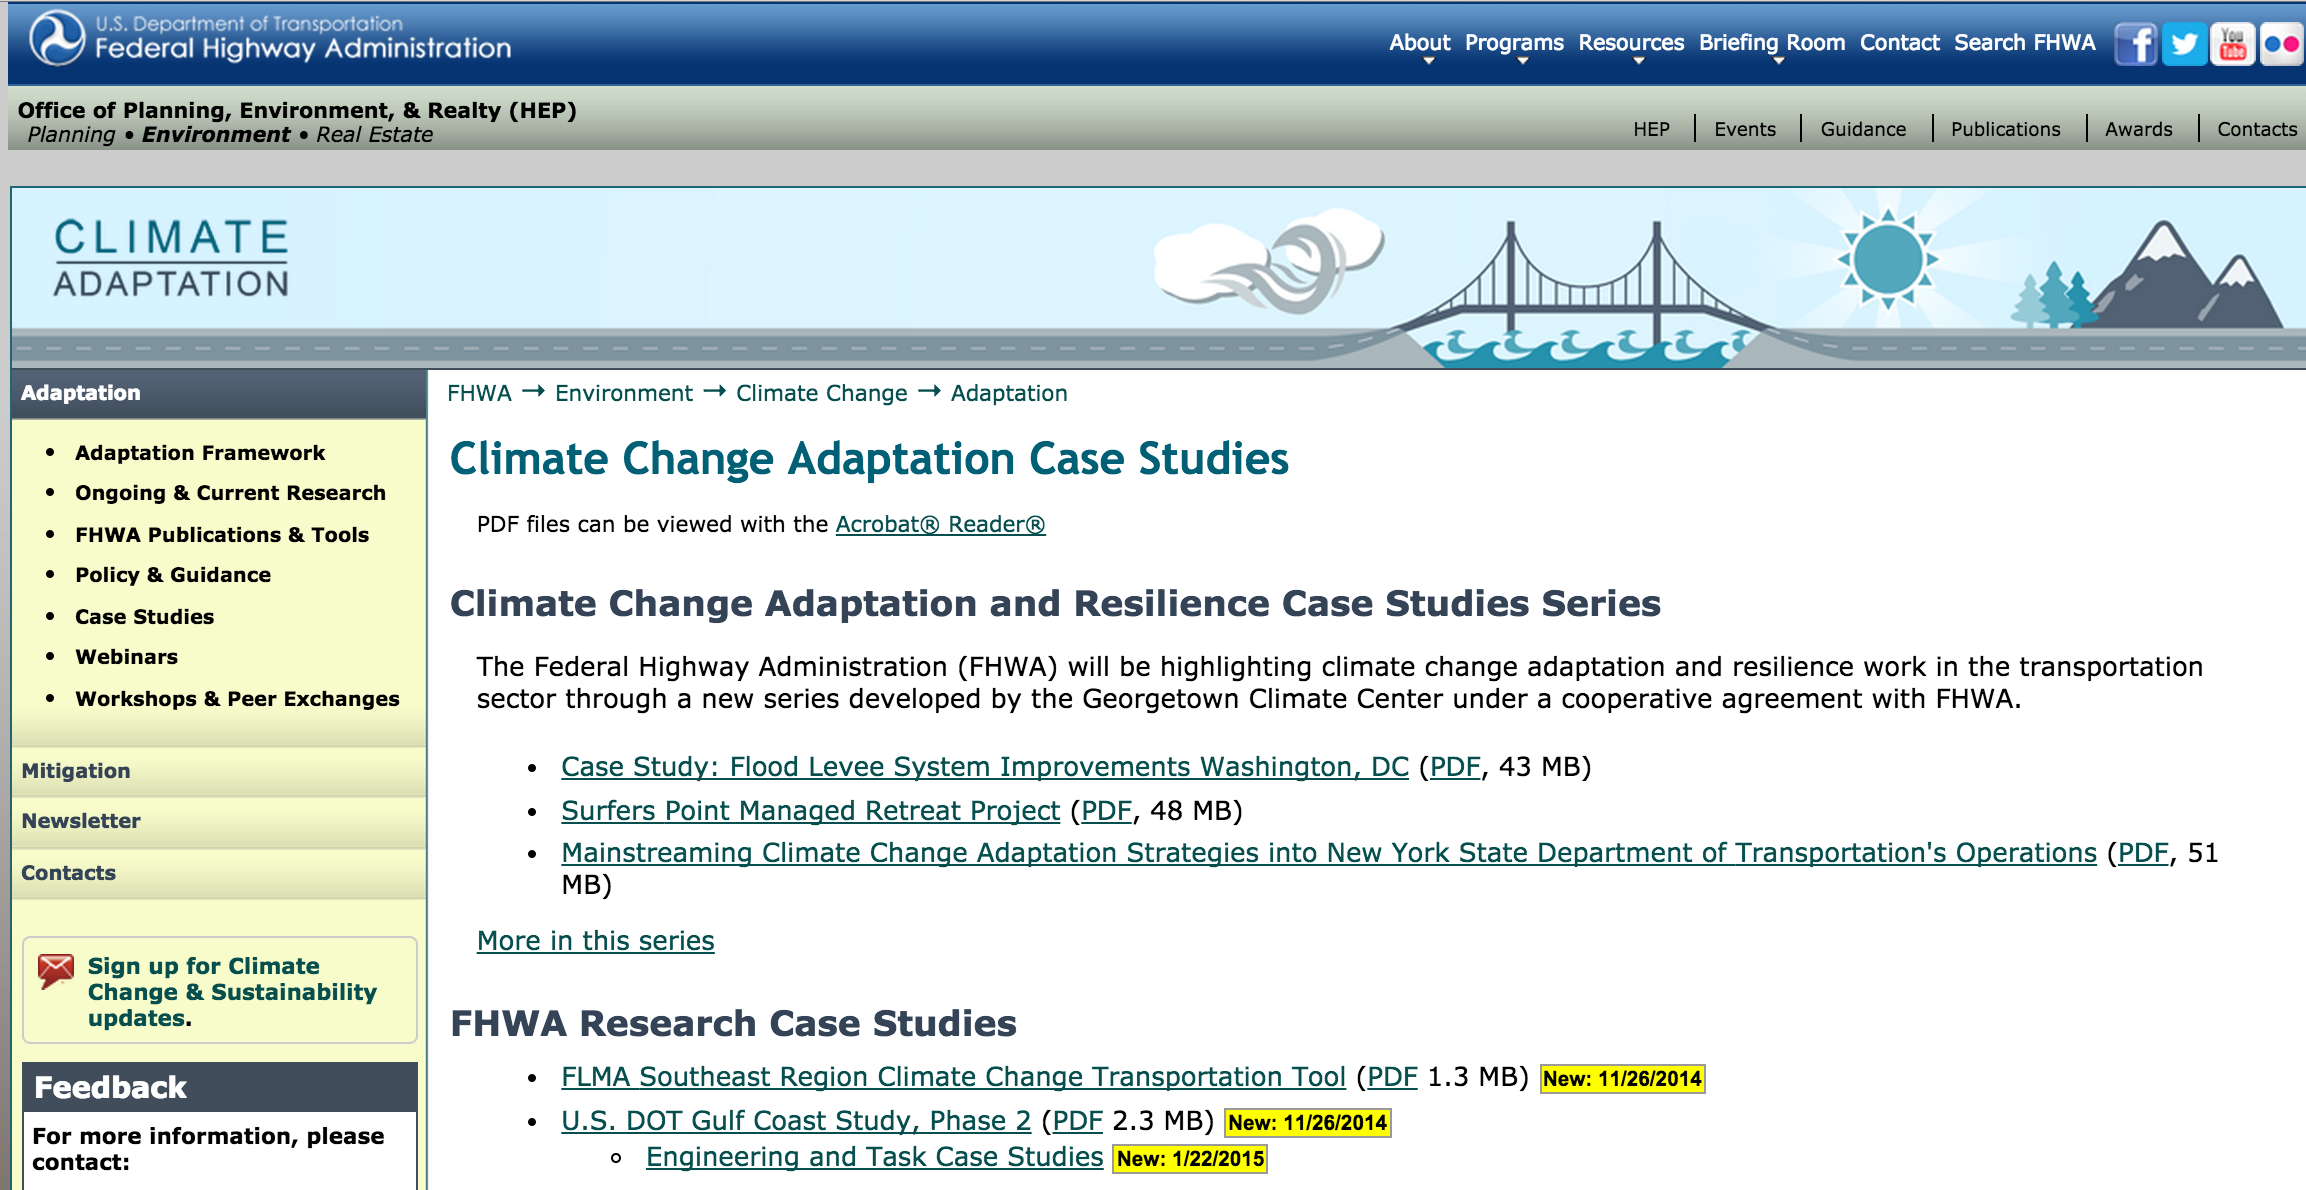 FHWA Climate Change Adaptation Case Studies